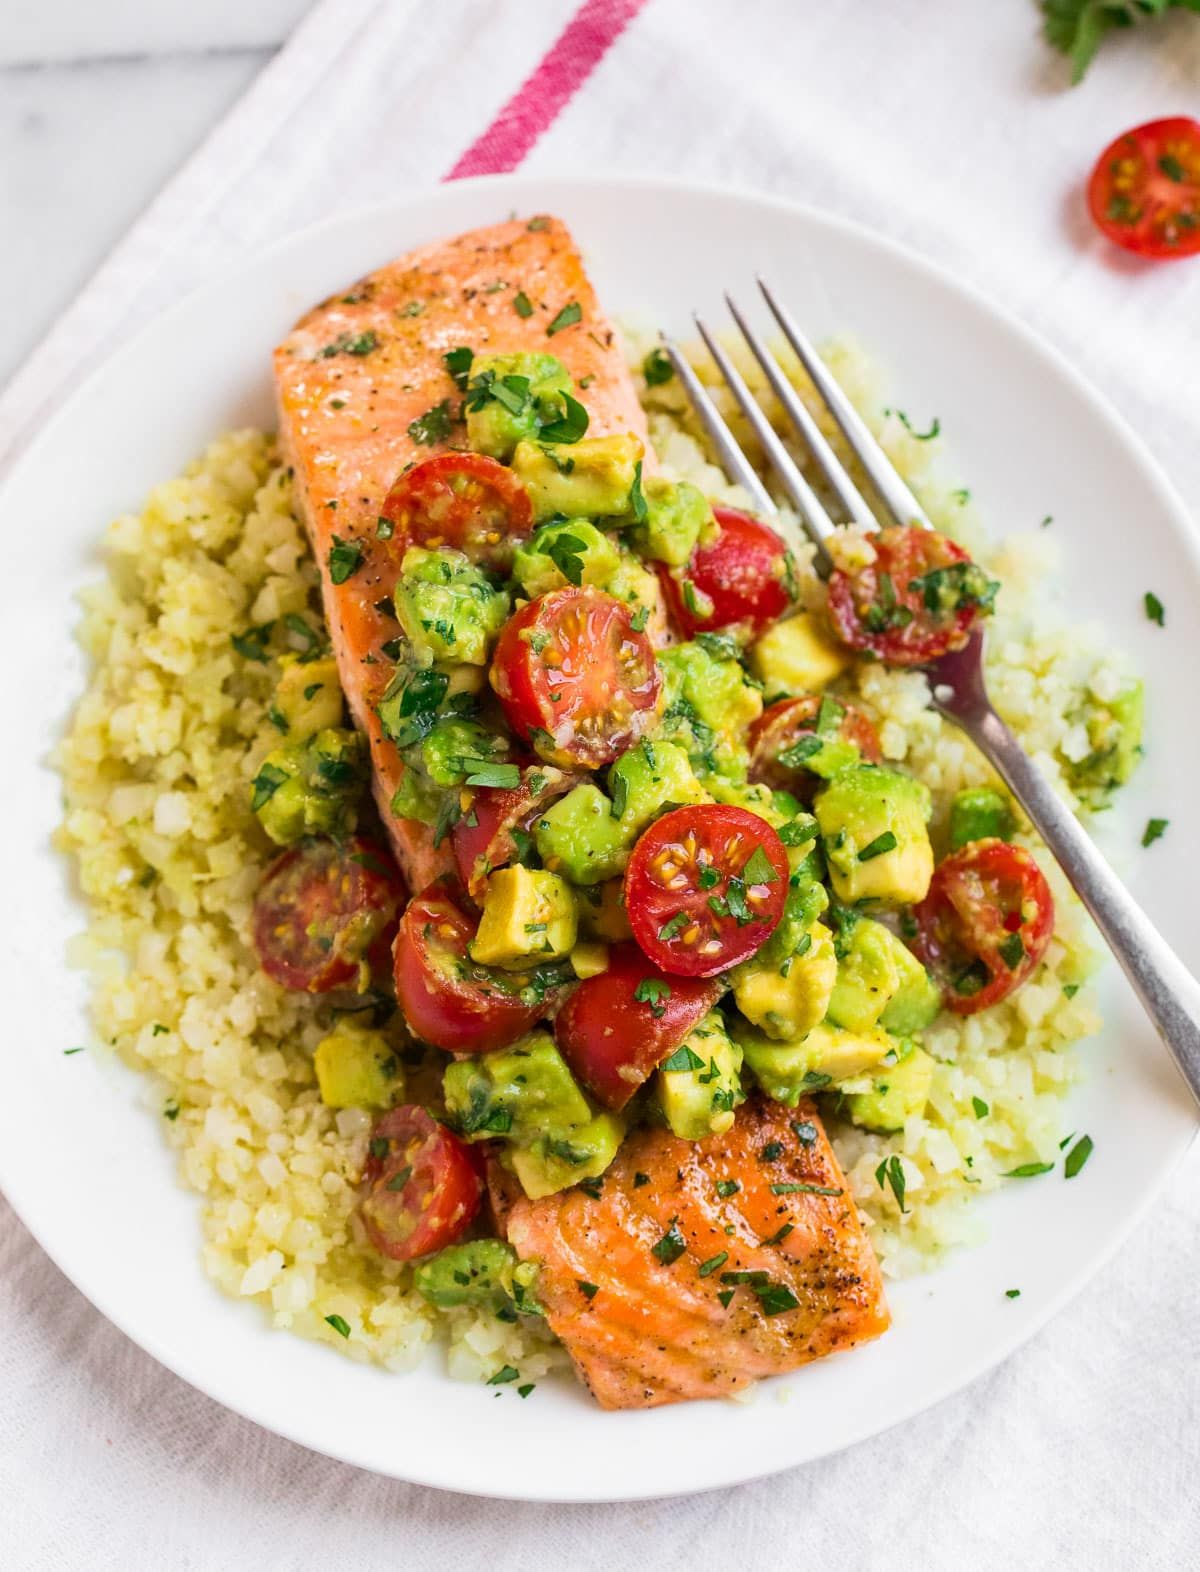 Baked Salmon with Creamy Avocado Sauce